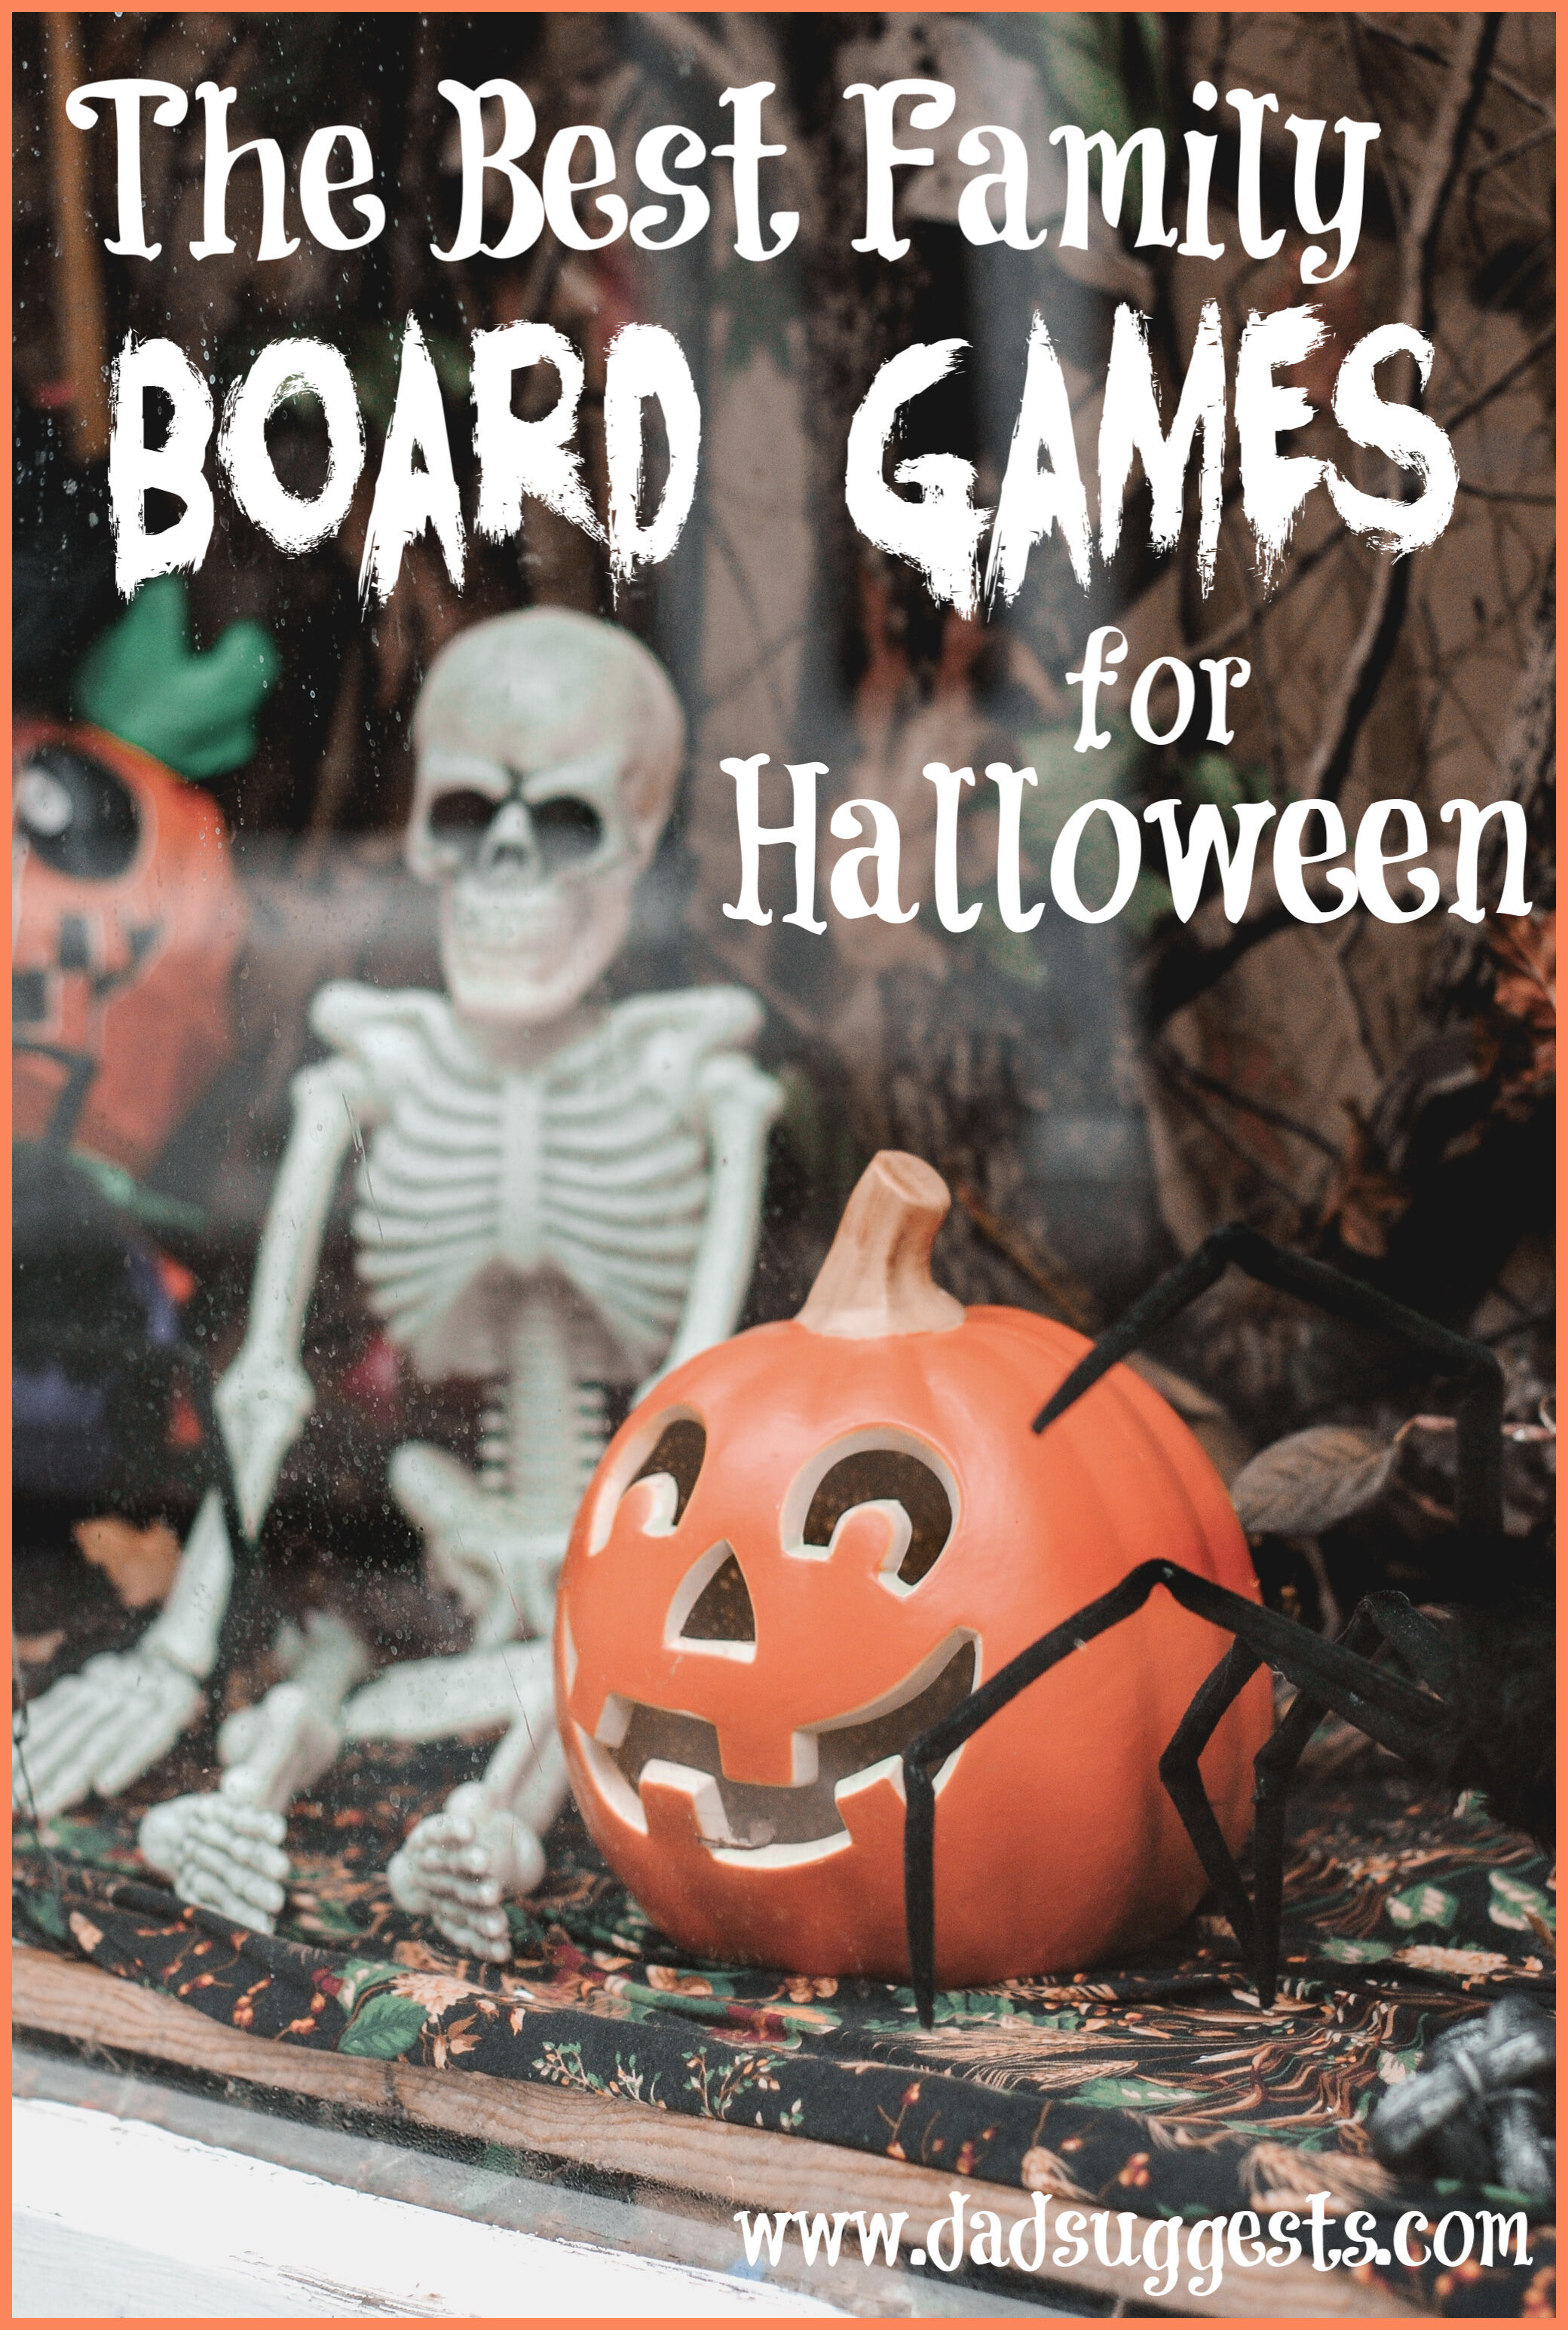 The best Halloween family board games. If you want to set a spooky atmosphere and Halloween mood during your next family game night, make sure to check out these spooky board games. #halloweenboardgames #halloweengames #familygamenight #familyboardgames #kidsboardgames #familyhalloween #dadsuggests